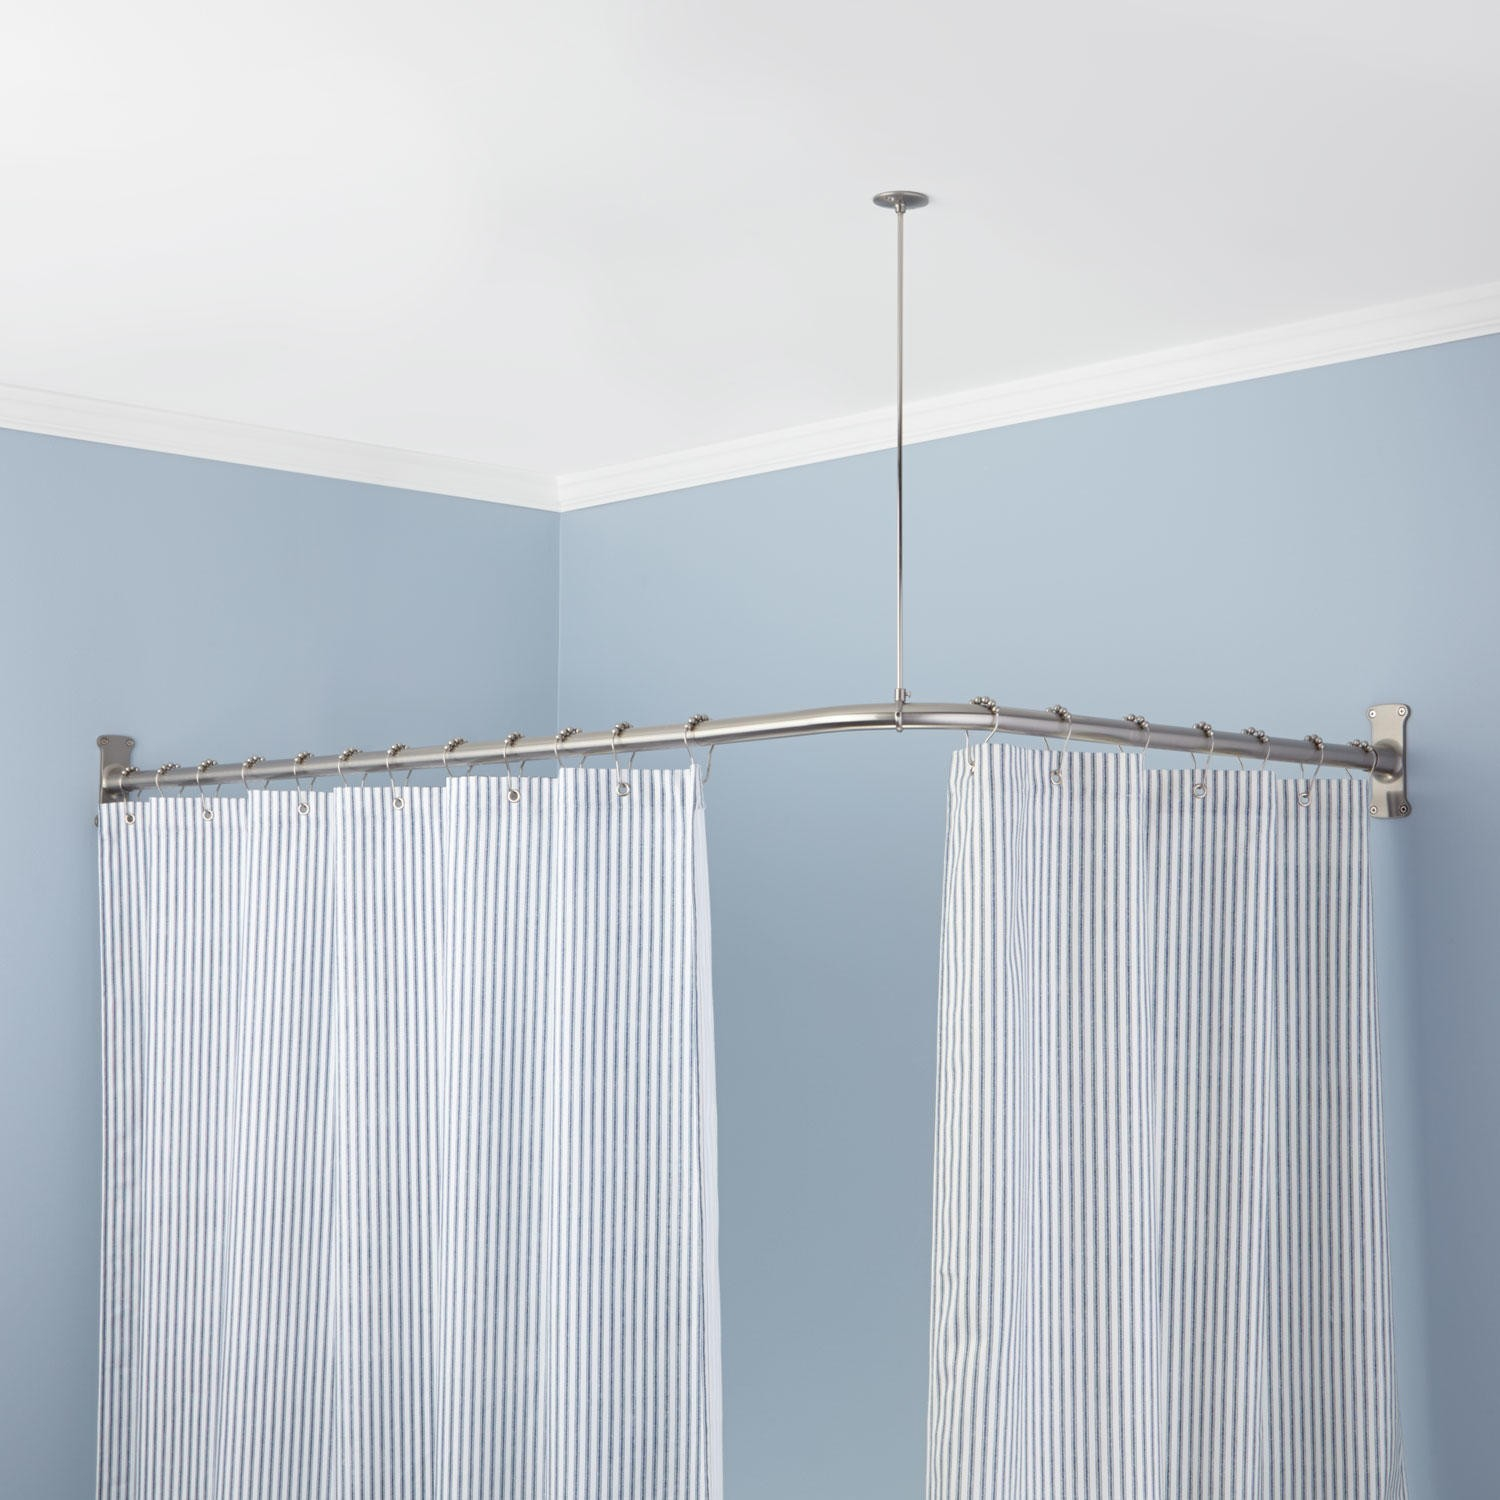 Oval Shower Curtain Rod Nickel The Homy Design Nice Oval pertaining to dimensions 1500 X 1500